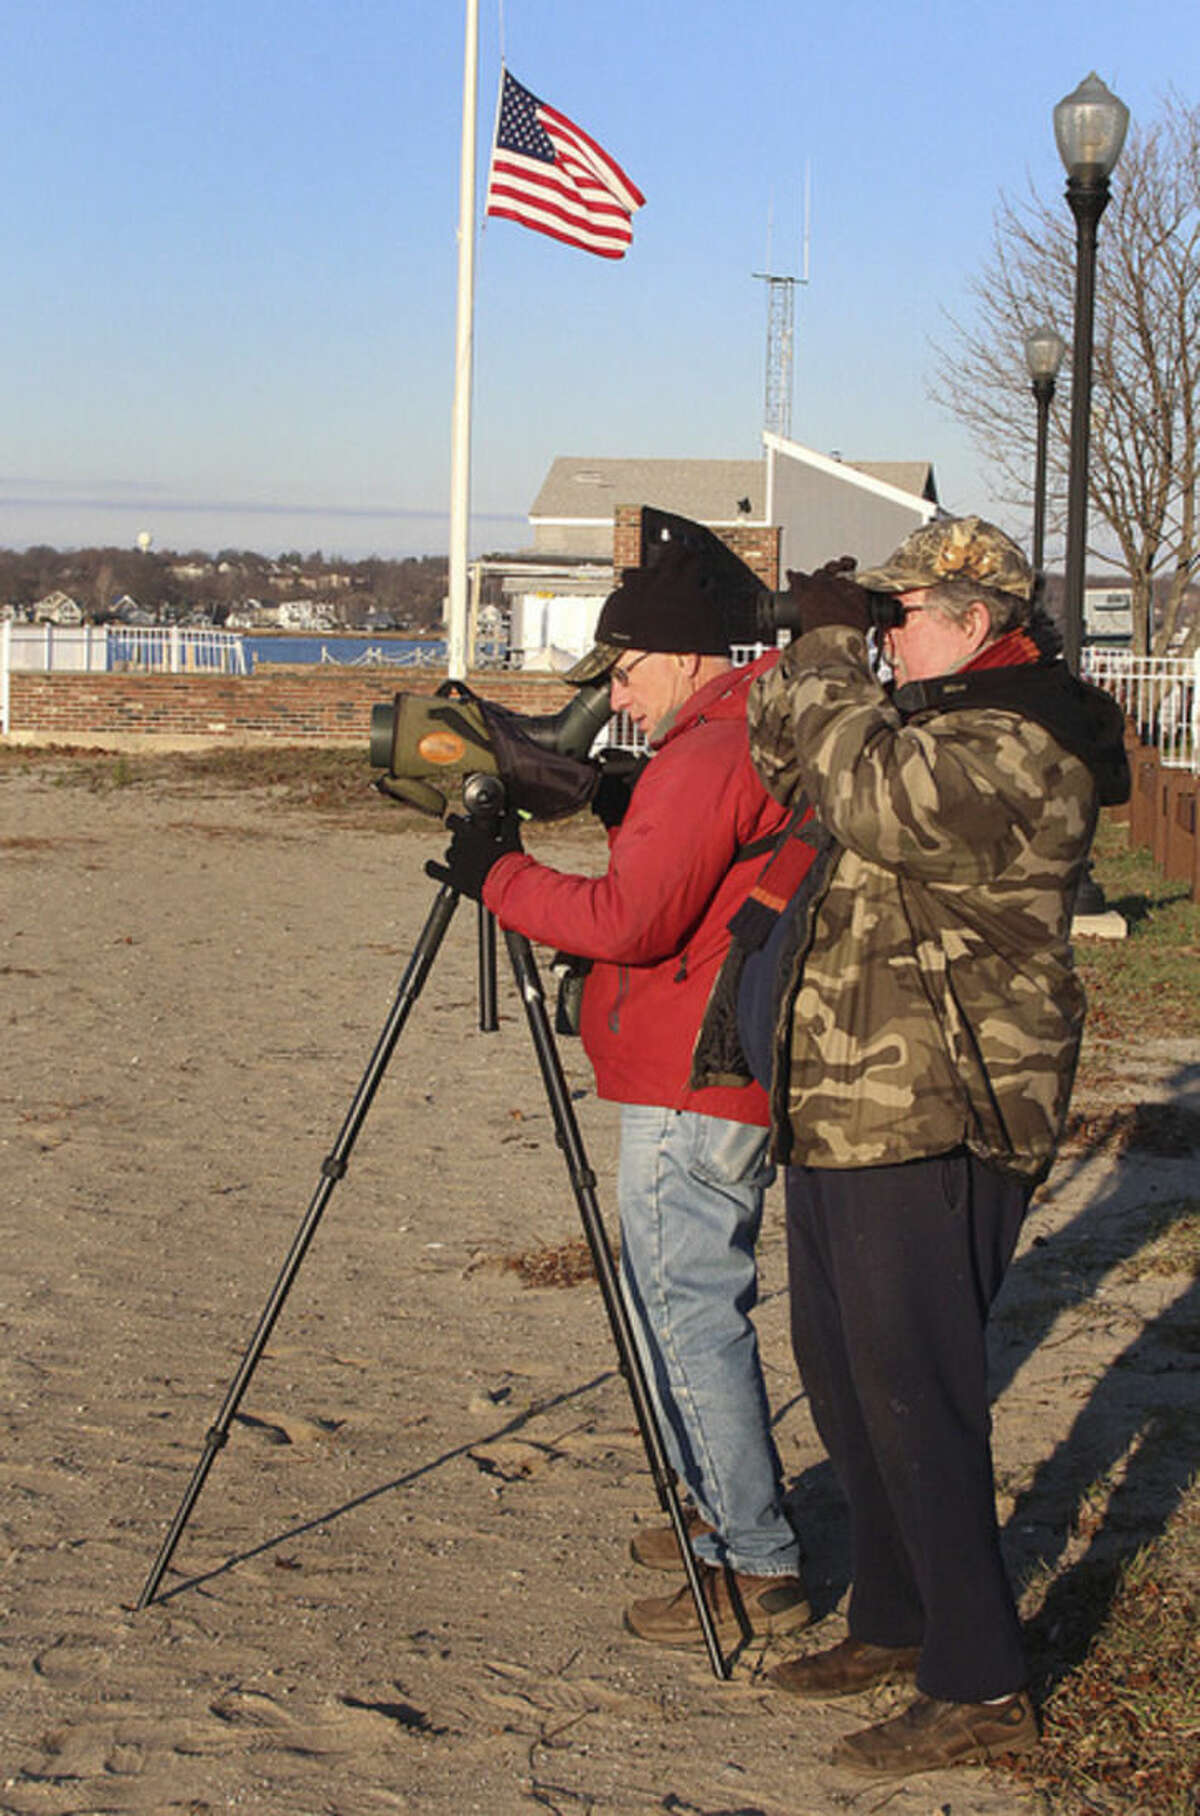 Hour photo/Chris Bosak Birdwatchers Frank Mantlik and Larry Flynn scan Long Island Sound for birds from Calf Pasture Beach on Sunday during the annual Christmas Bird Count.